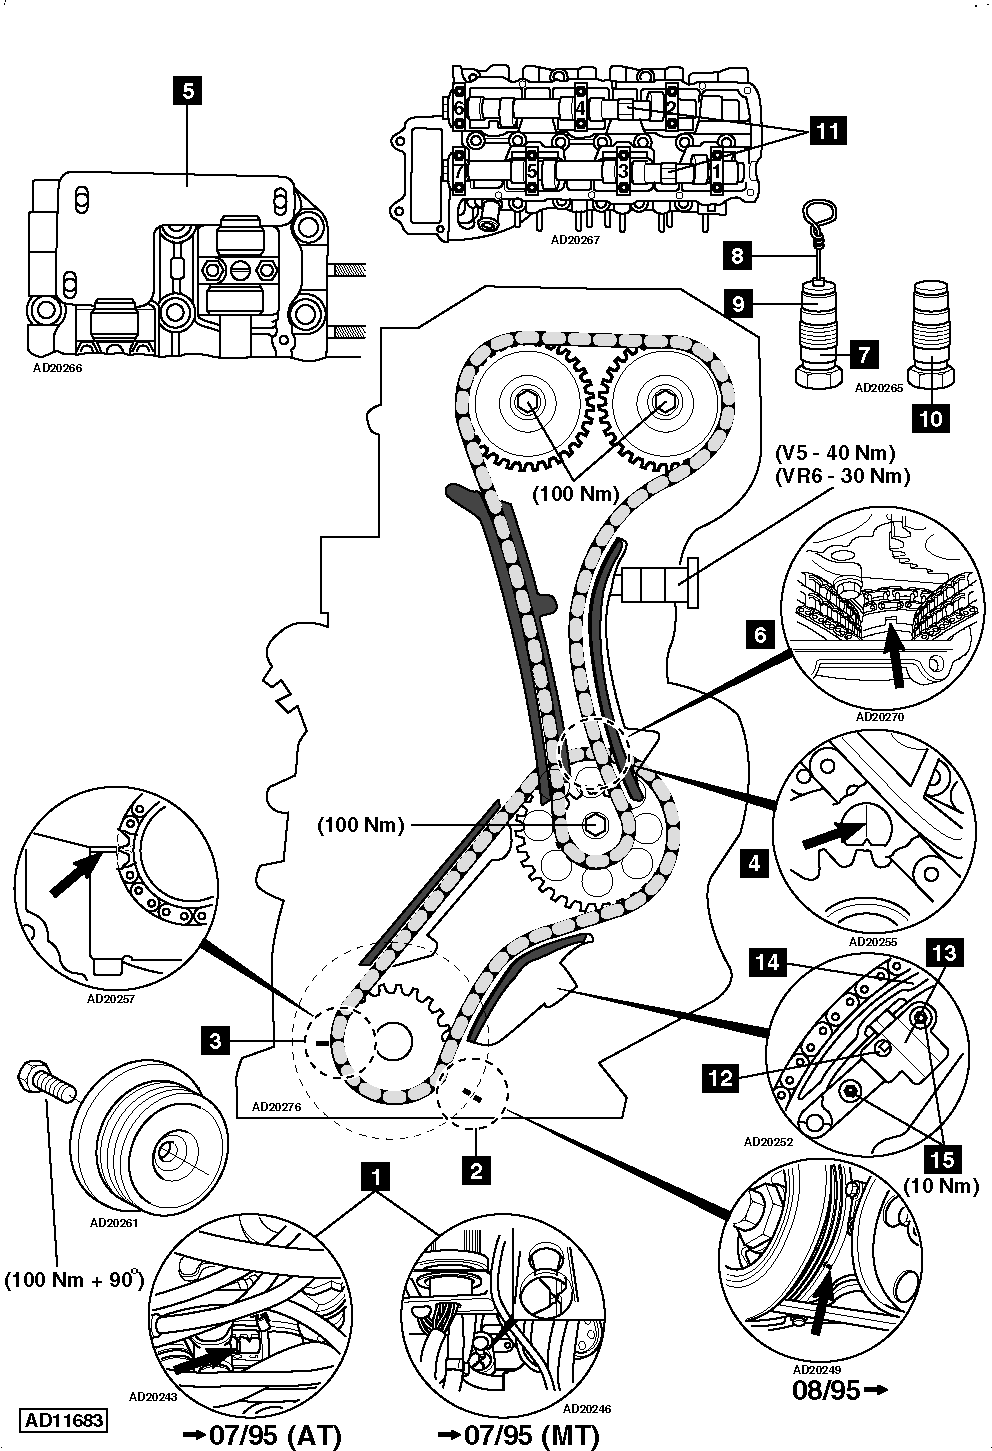 How To Replace Timing Chain On Vw Golf 4 23 And 4motion Vr6 Engine Diagram: 2001 BMW 325ci Engine Diagram At Chusao.net